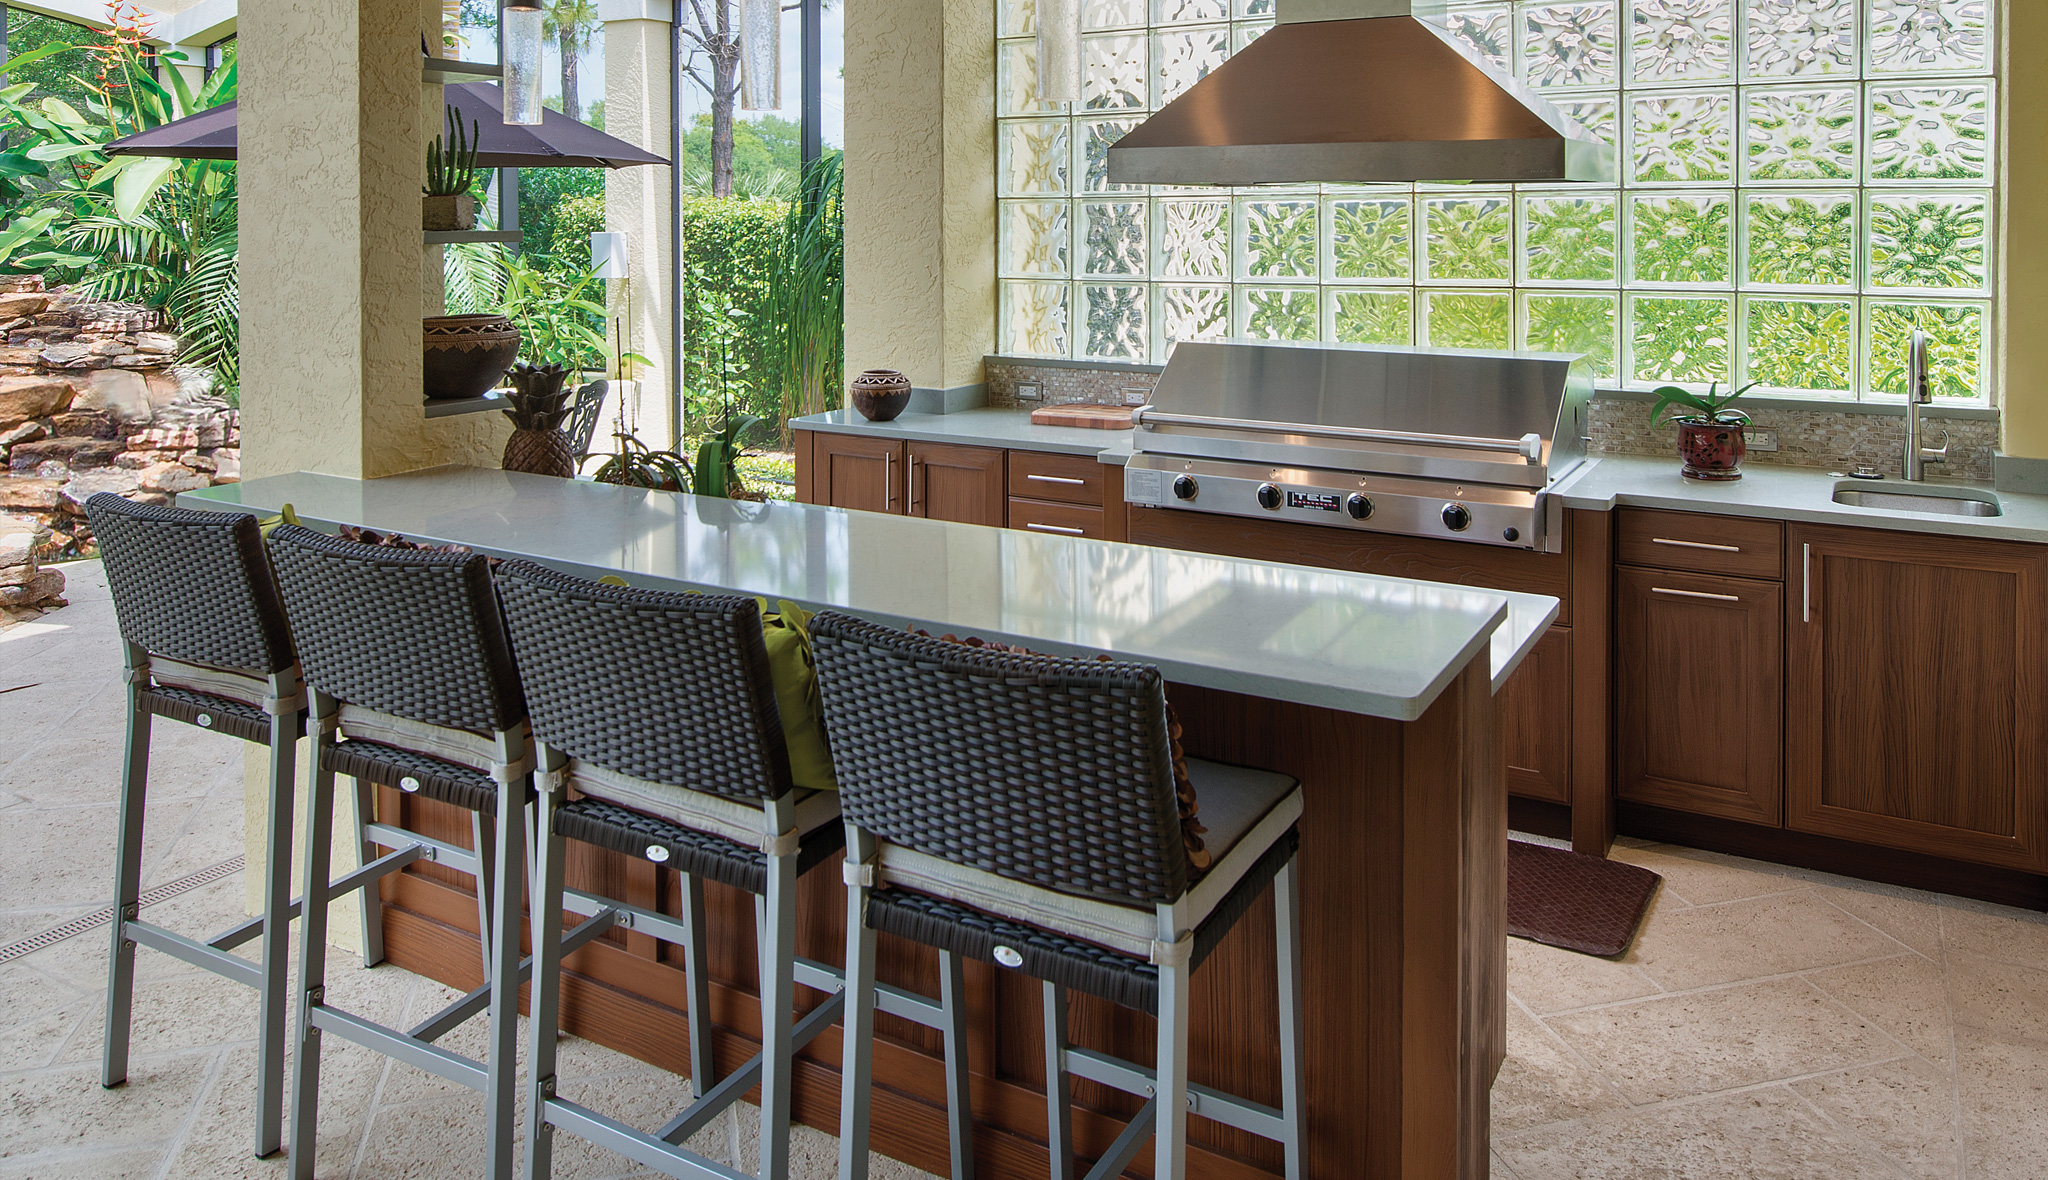 Weatherproof Outdoor Summer Kitchen Cabinets in Melbourne FL by Hammond Kitchens & Bath